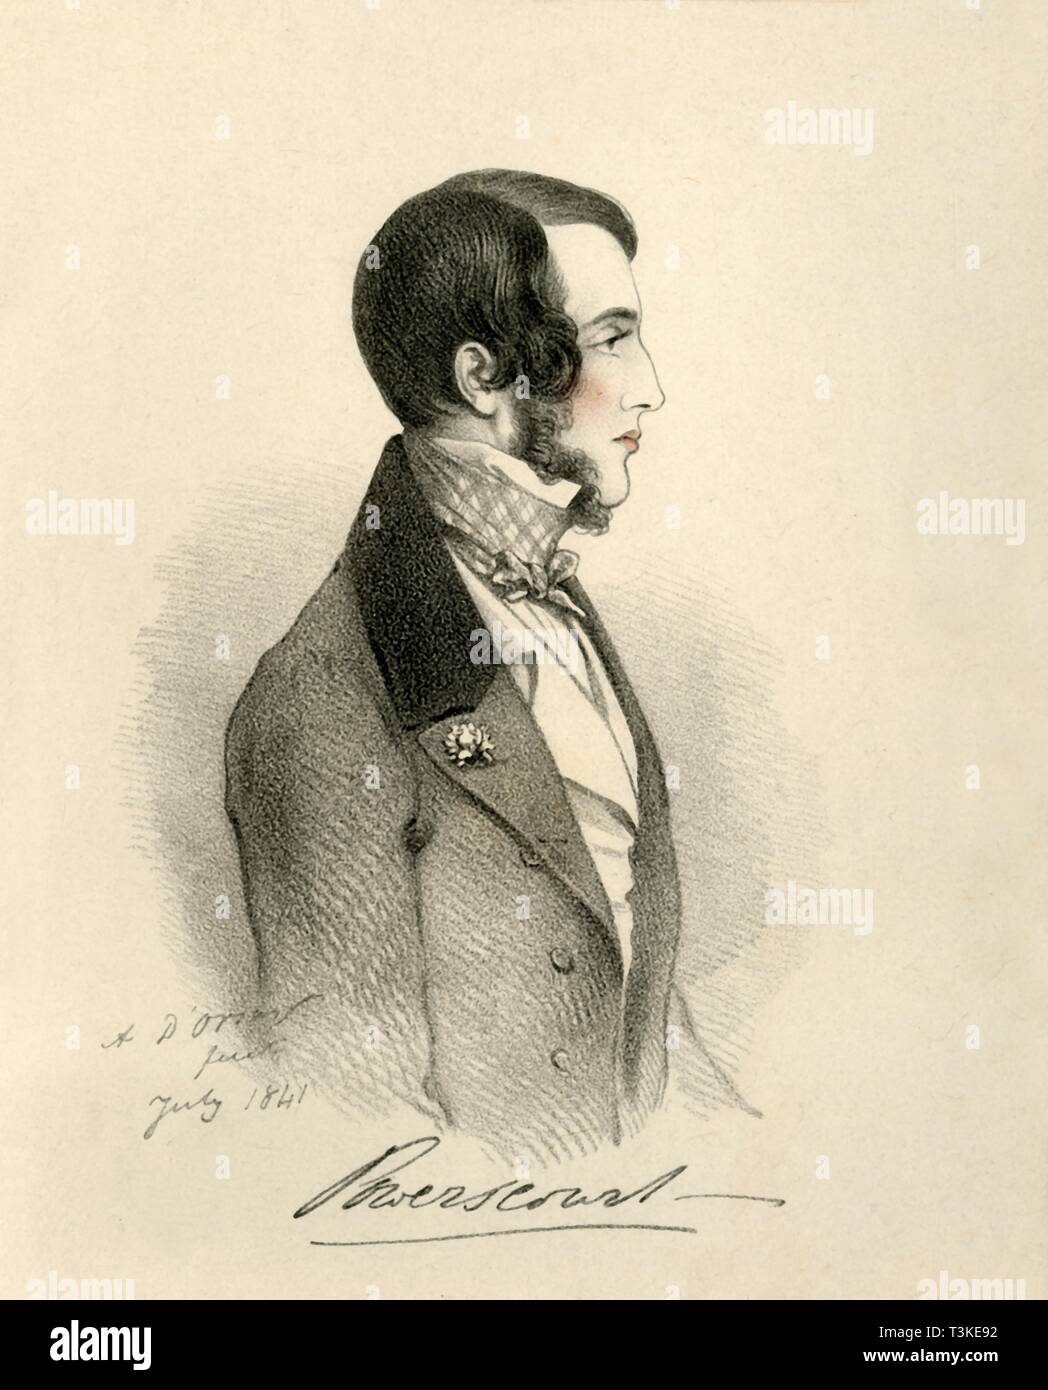 "'Viscount Powerscourt', 1841. Portrait of Richard Wingfield, 6th Viscount Powerscourt (1815-1844), British peer and Conservative politician. From ""Portraits by Count D'Orsay"", an album assembled by Lady Georgiana Codrington. [1850s] Stock Photo"